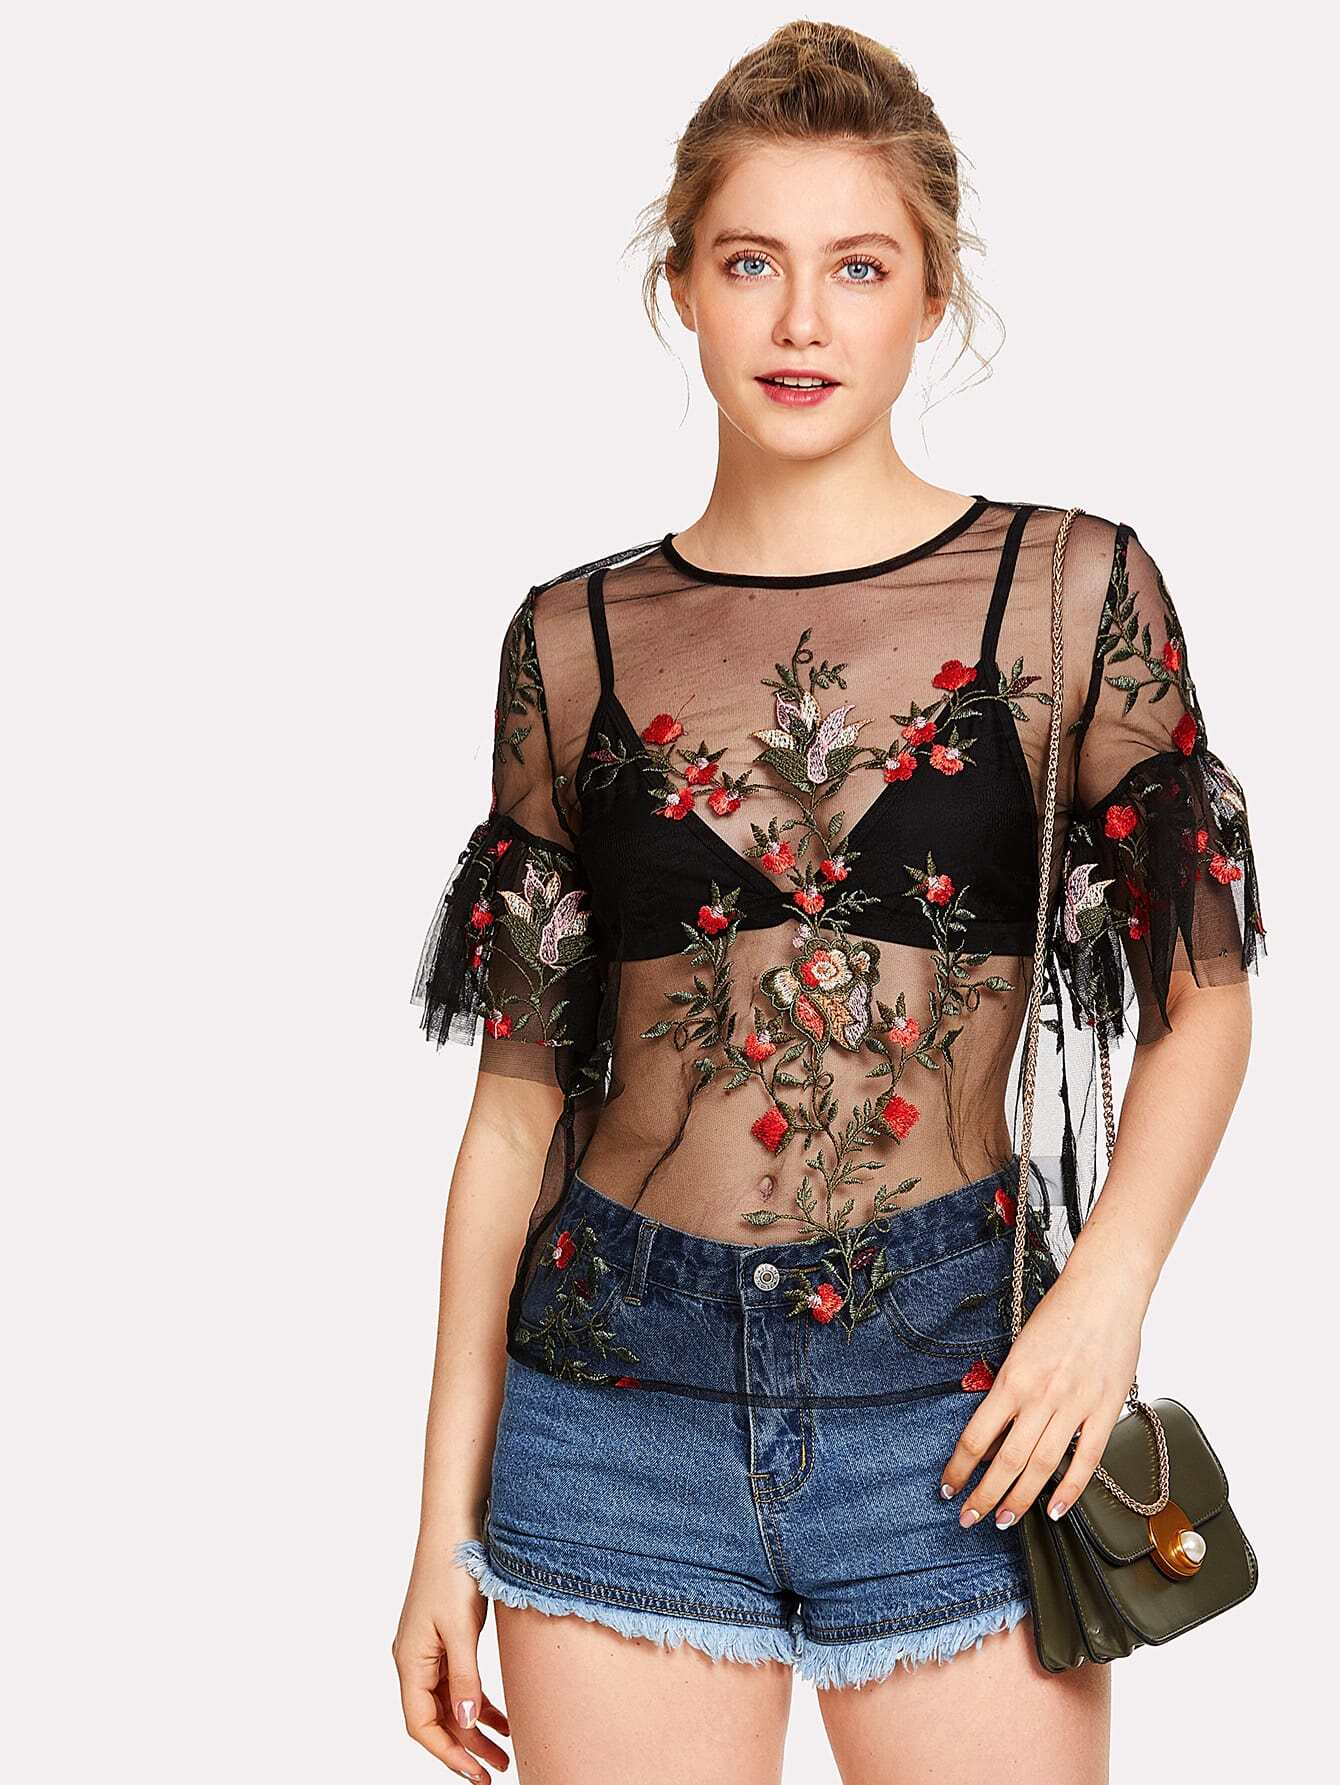 Floral Embroidered Applique Flounce Sleeve Sheer Top flounce string bra with sheer briefs